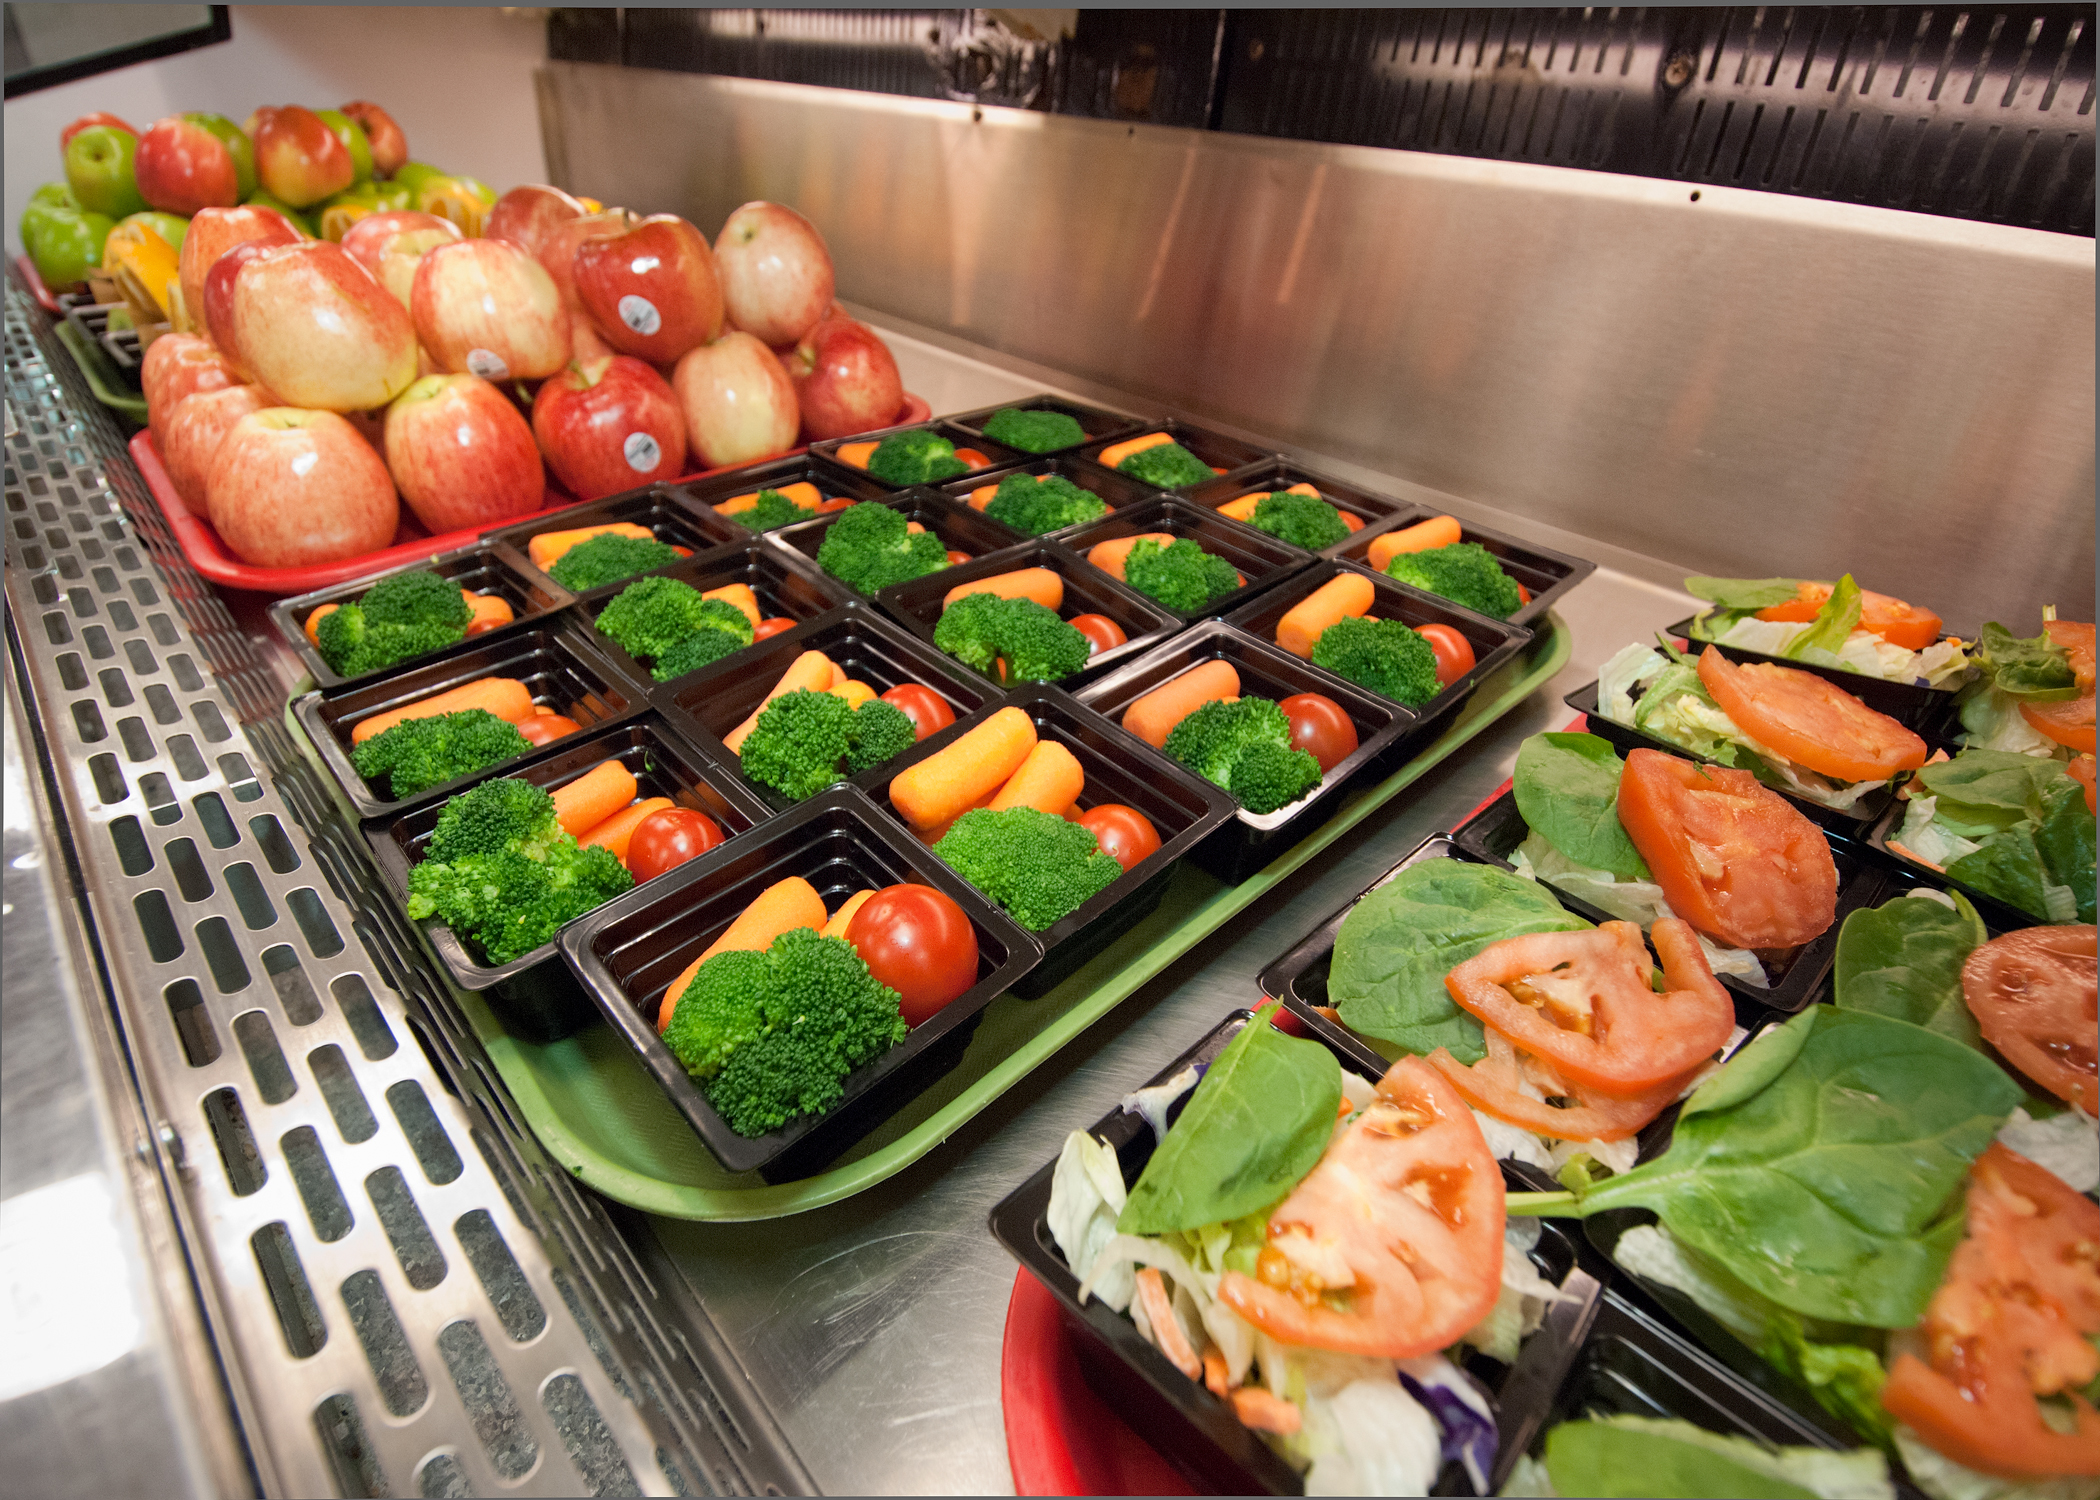 Sample Essay on Healthy School Lunches in America